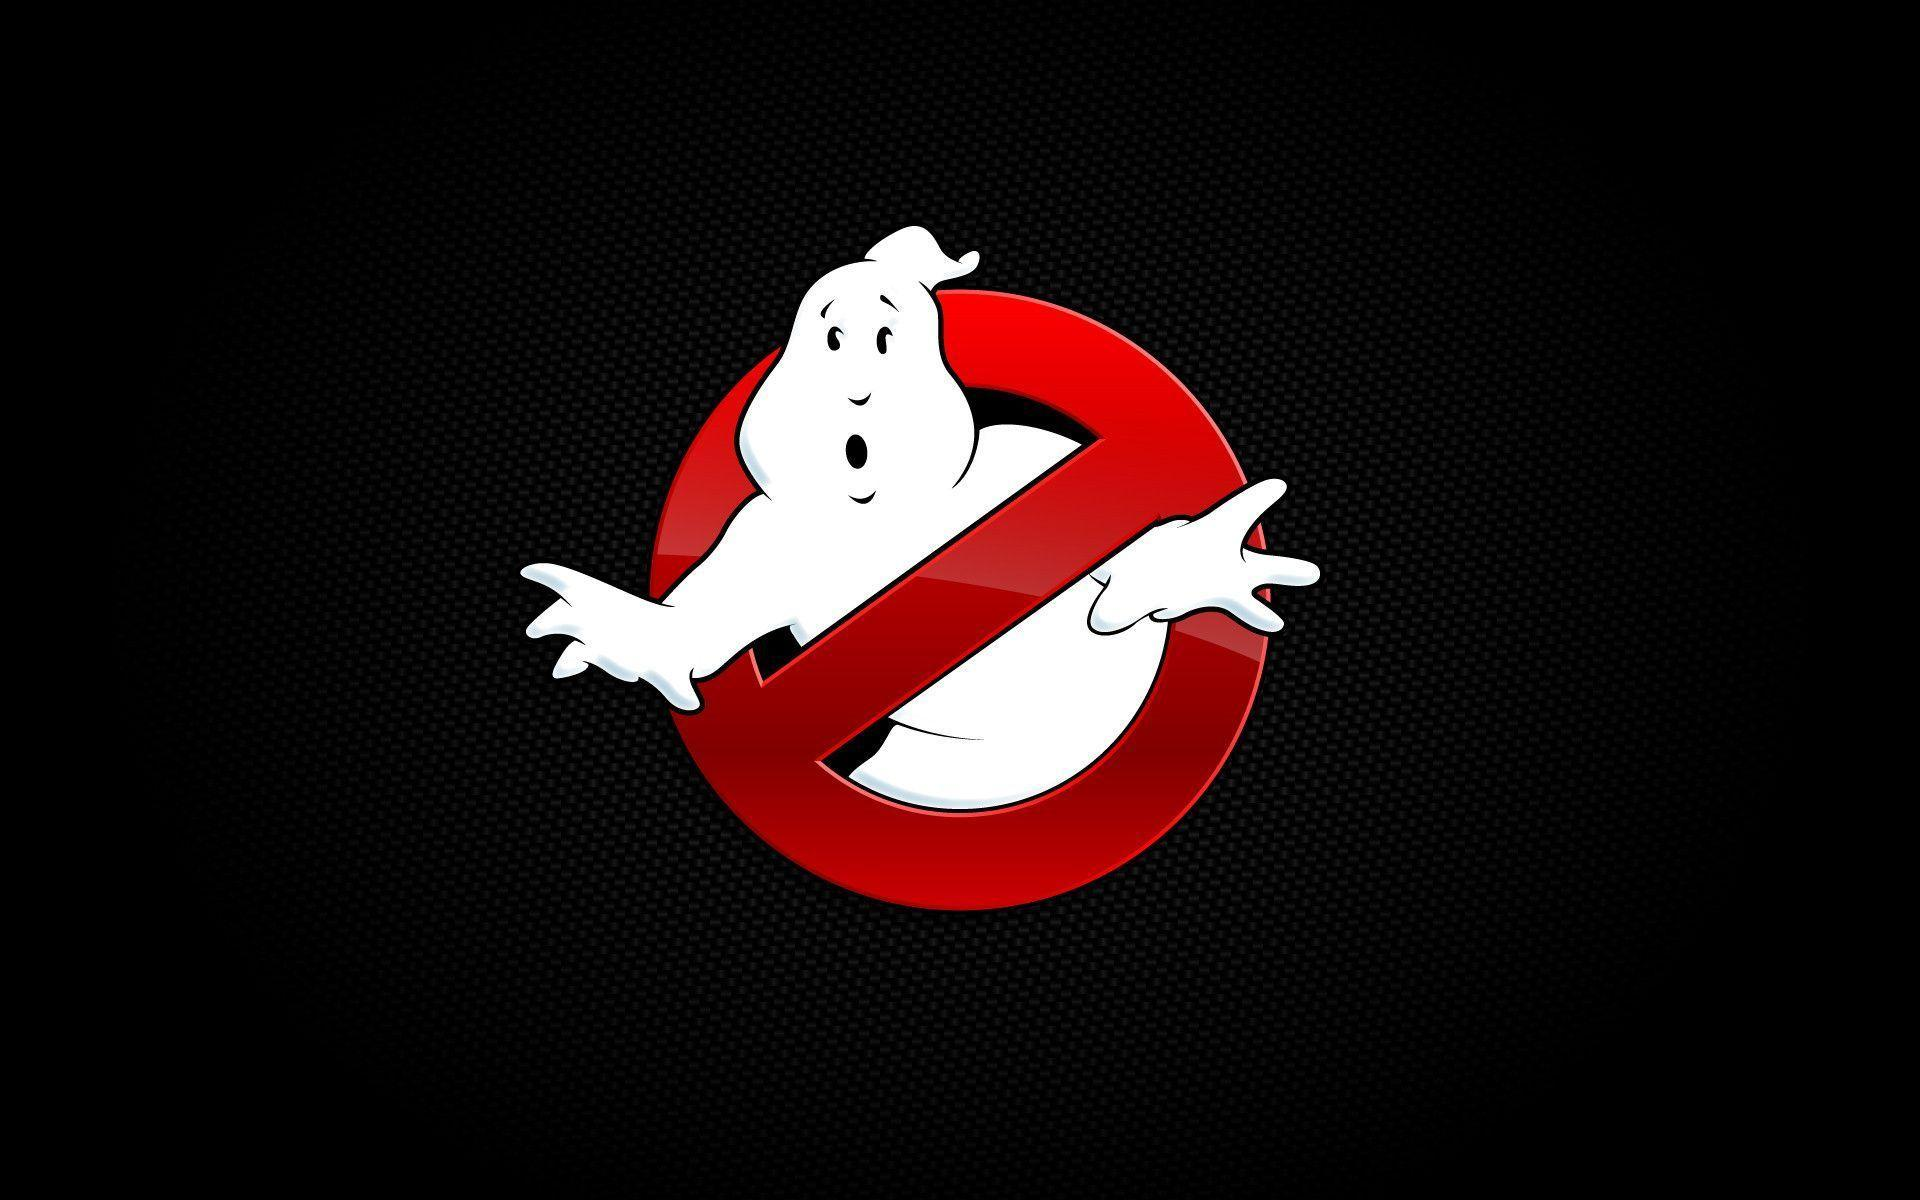 ghostbusters wallpapers - wallpaper cave